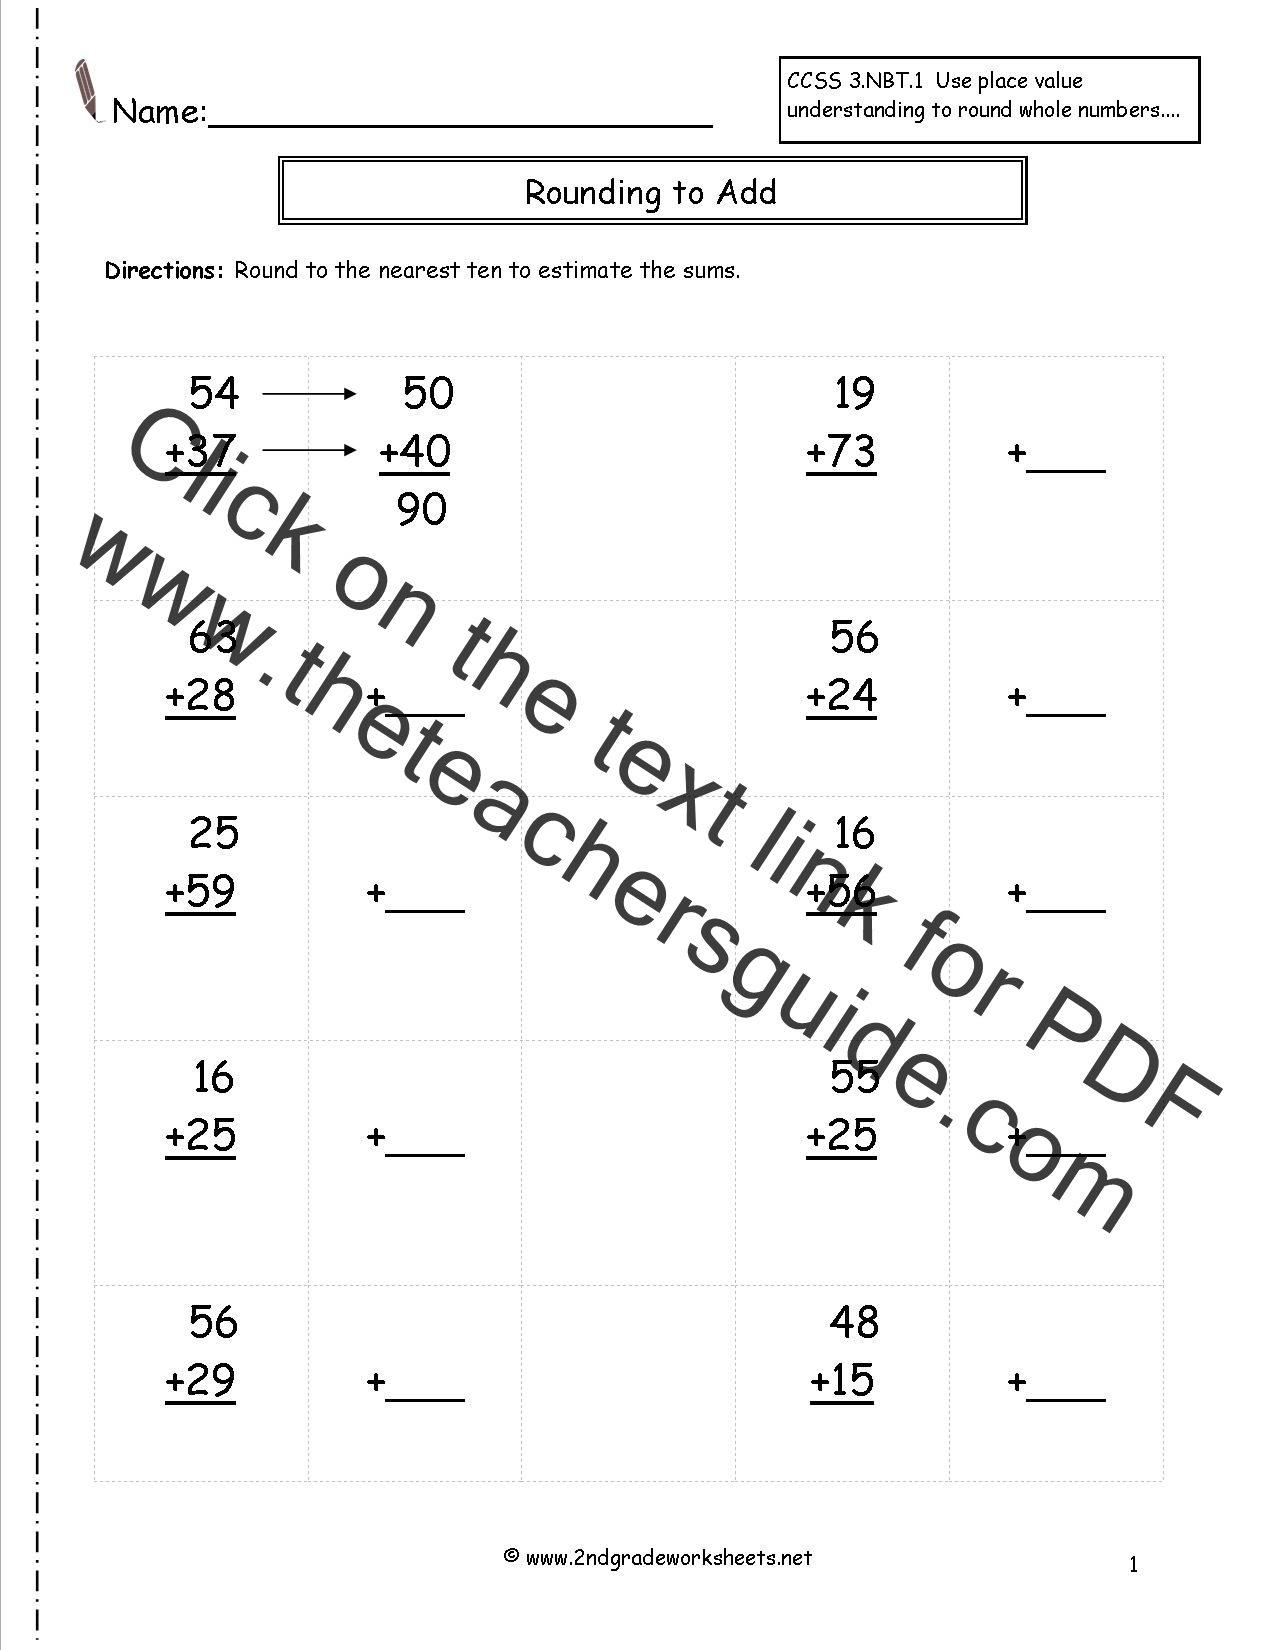 worksheet Free Rounding Worksheets rounding whole numbers worksheets to estimate the sum worksheet rounding